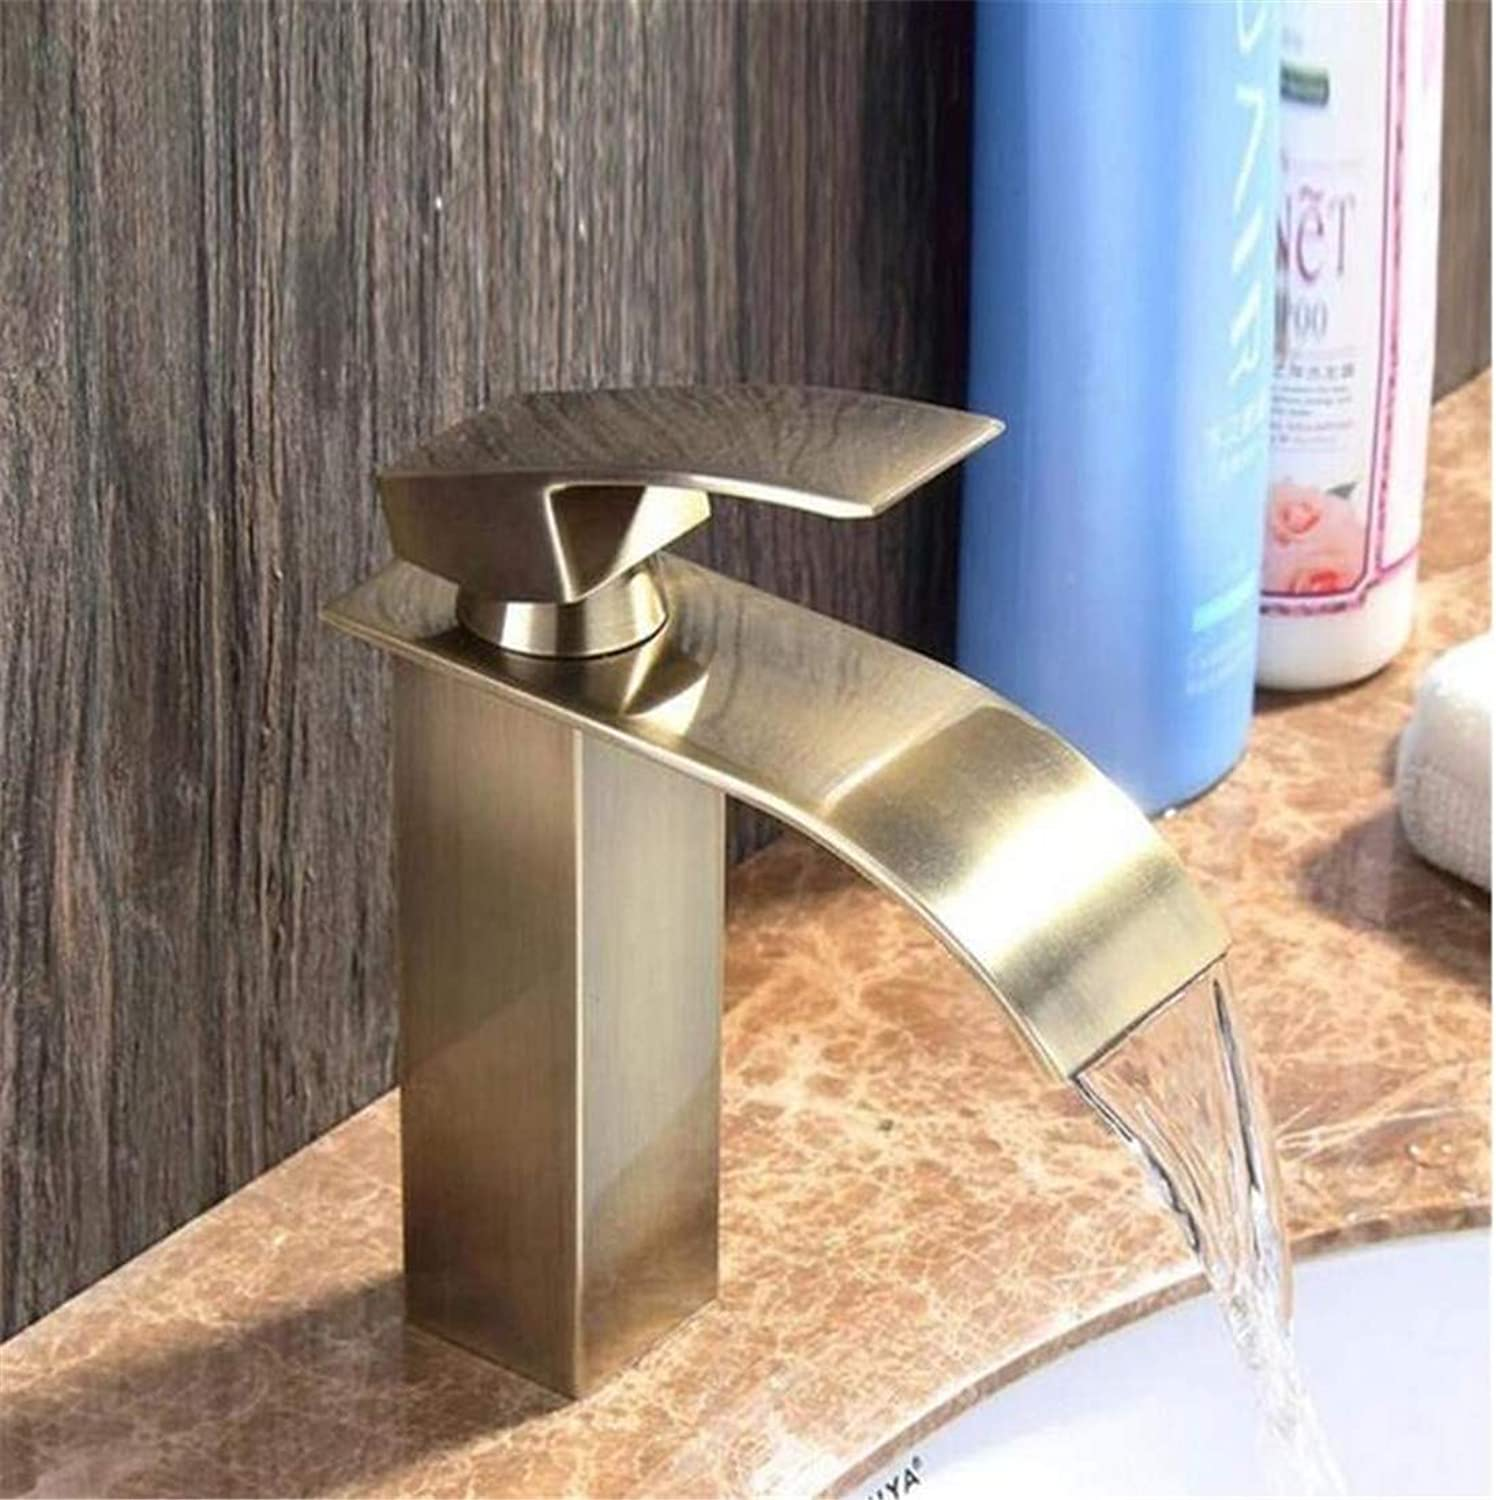 Faucet Luxury Plated Modern Faucet Faucet Washbasin Mixerbathroom Faucet Waterfall Tap Antique Brass Mounted Basin Waterfall Faucet